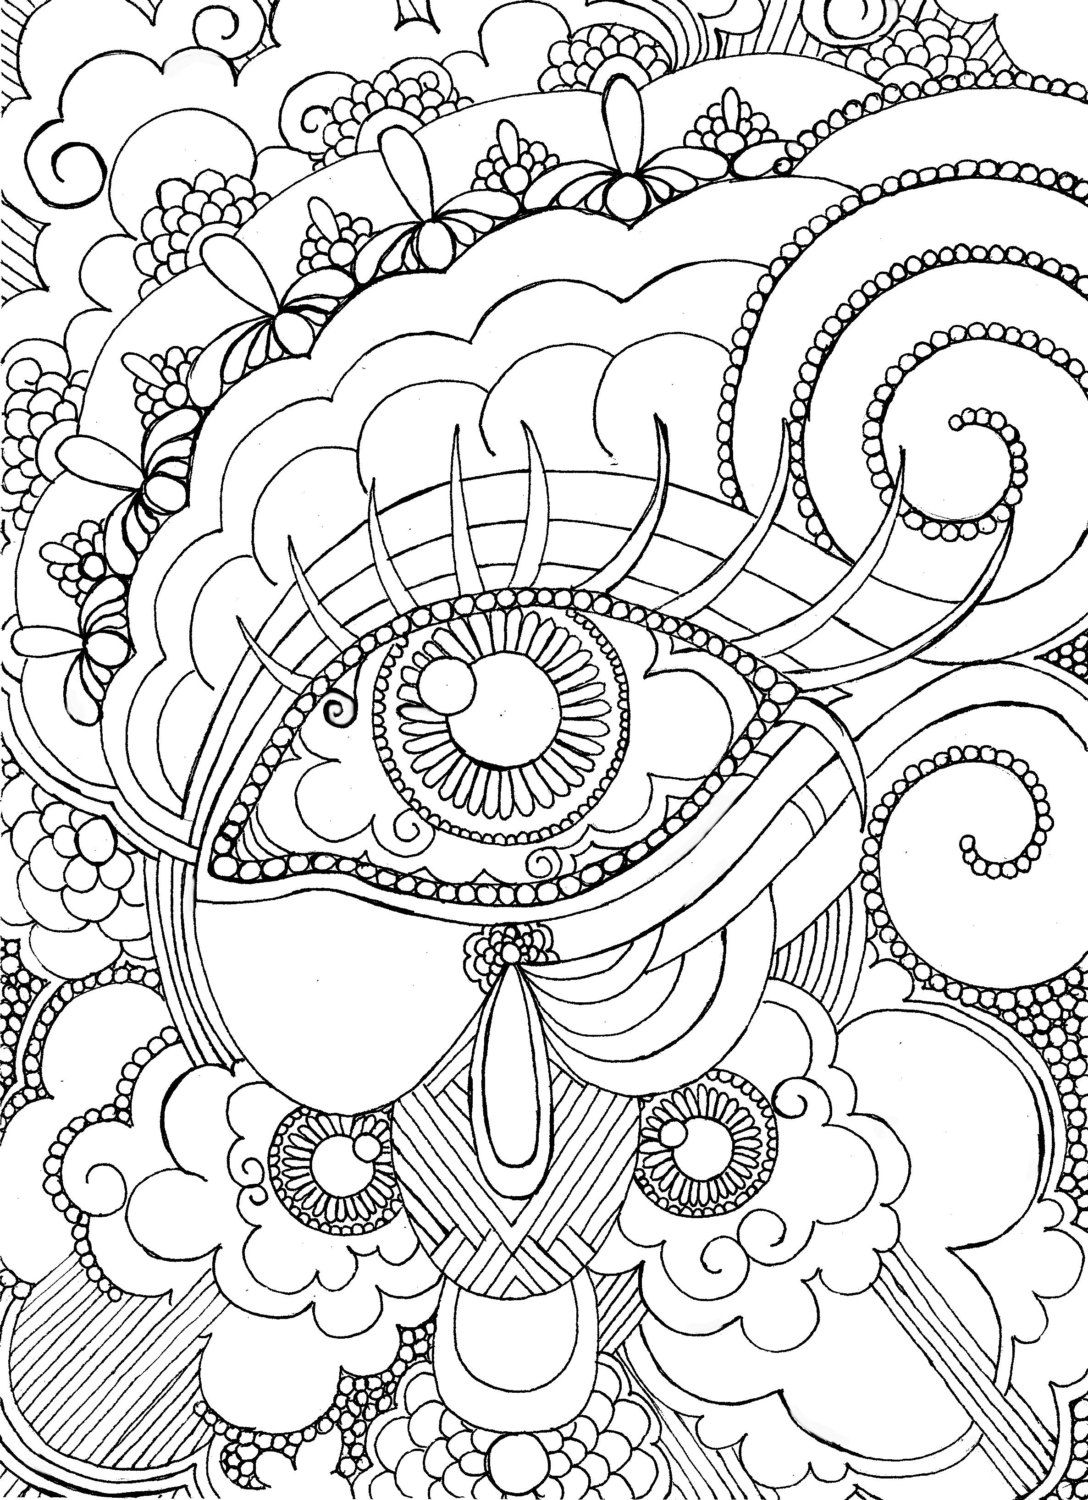 printable detailed coloring pages eye want to be colored adult coloring page by pages detailed coloring printable